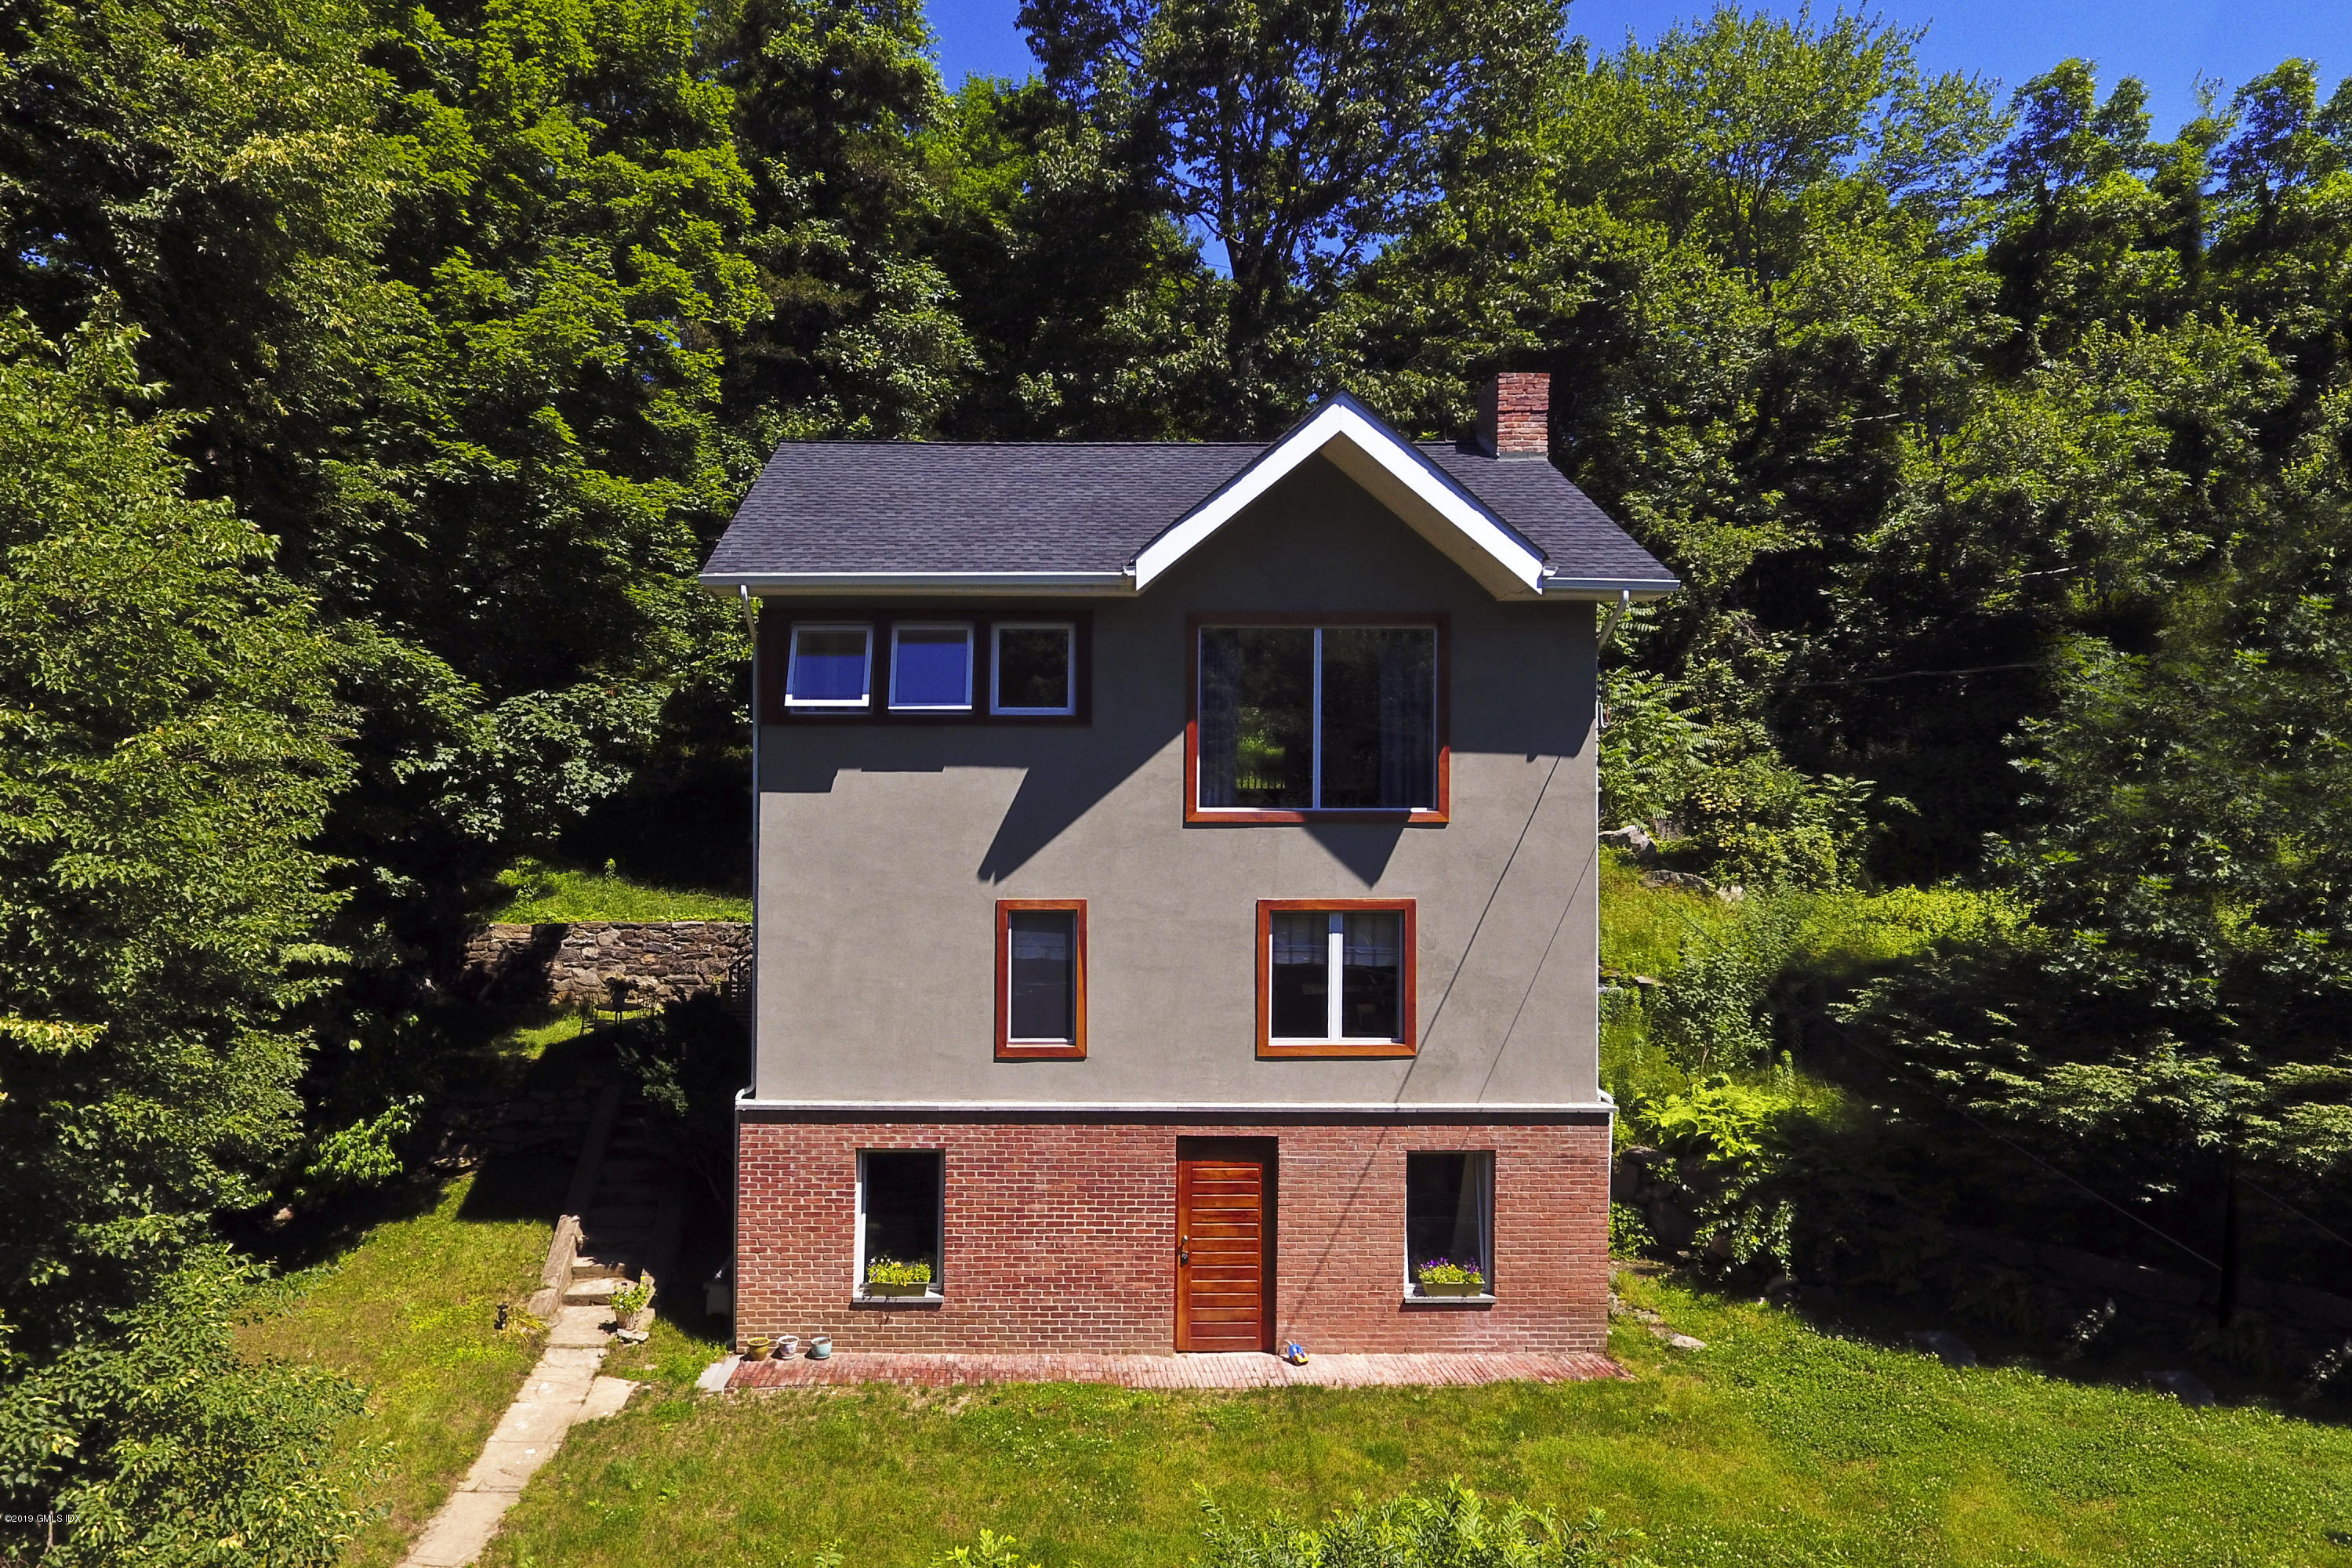 205 Glenville Road,Greenwich,Connecticut 06831,3 Bedrooms Bedrooms,2 BathroomsBathrooms,Single family,Glenville,107157